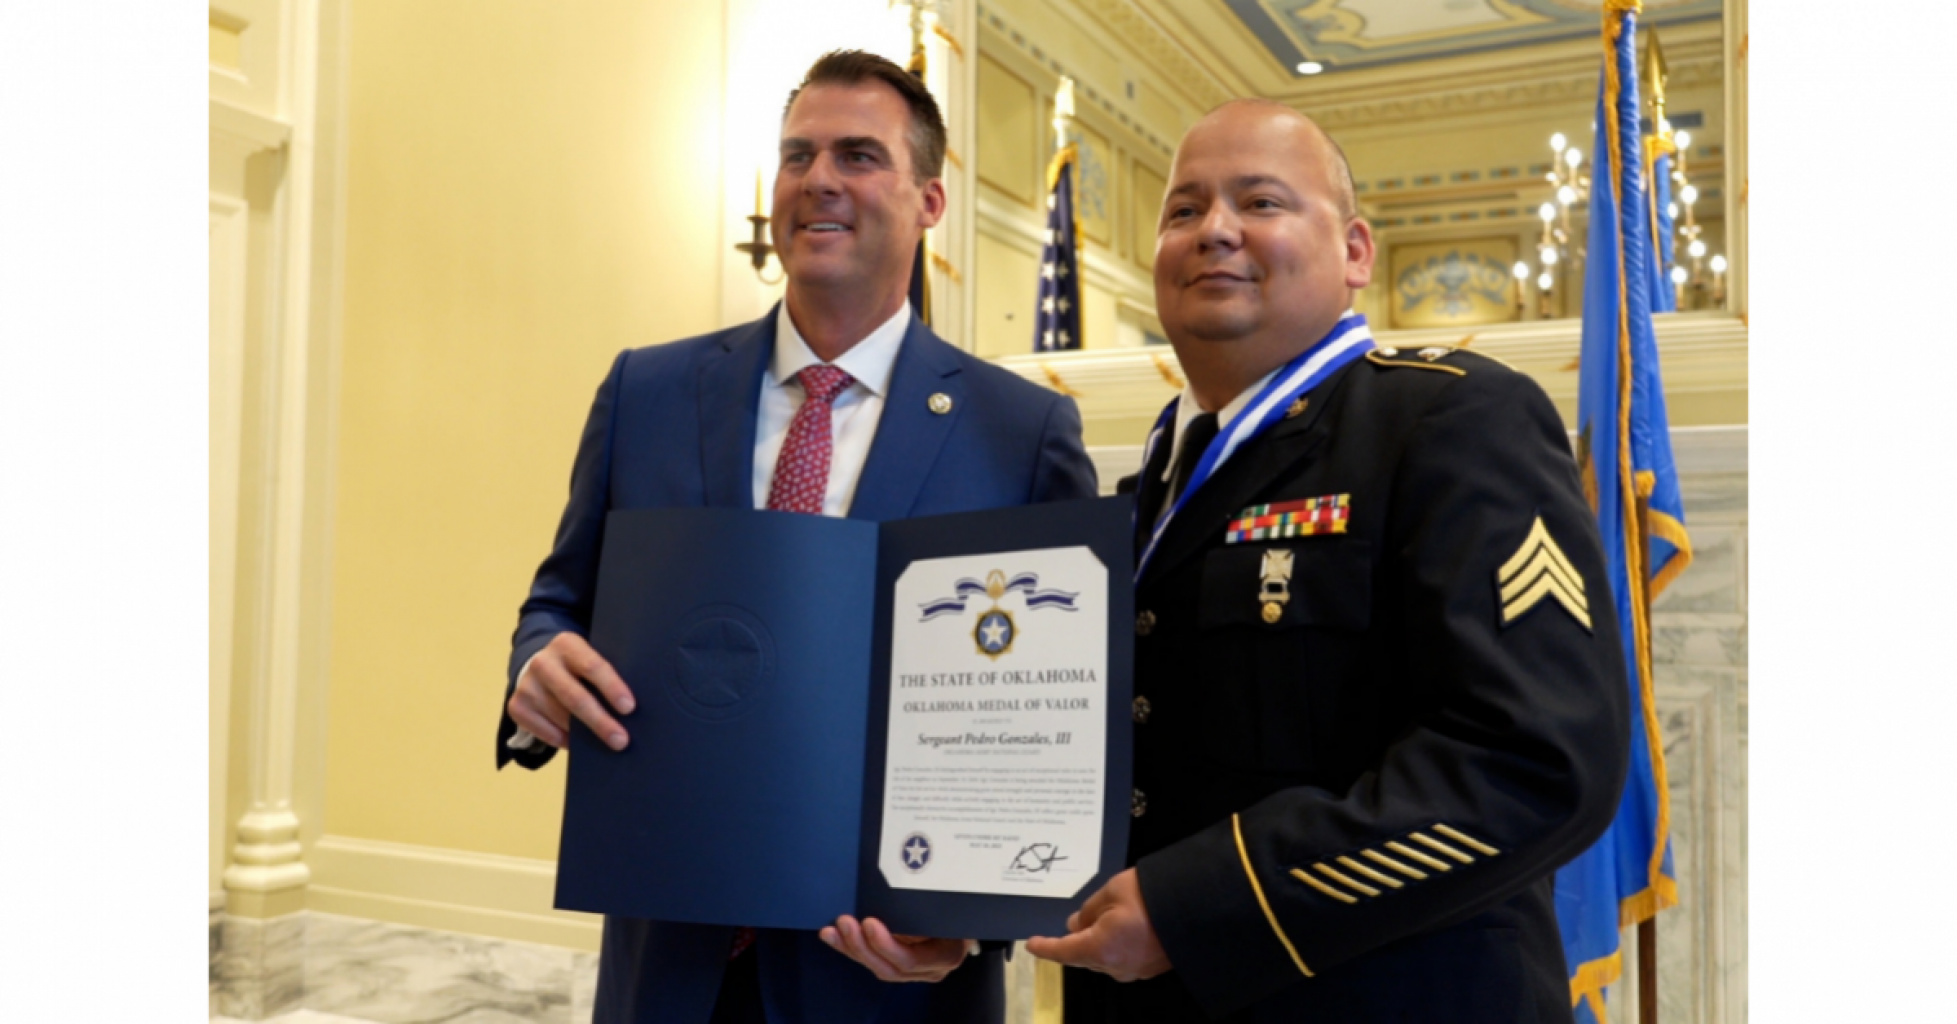 Governor Stitt Presents State Awards for Heroism. The Oklahoma Medal of Valor and Oklahoma Purple Heart Awards